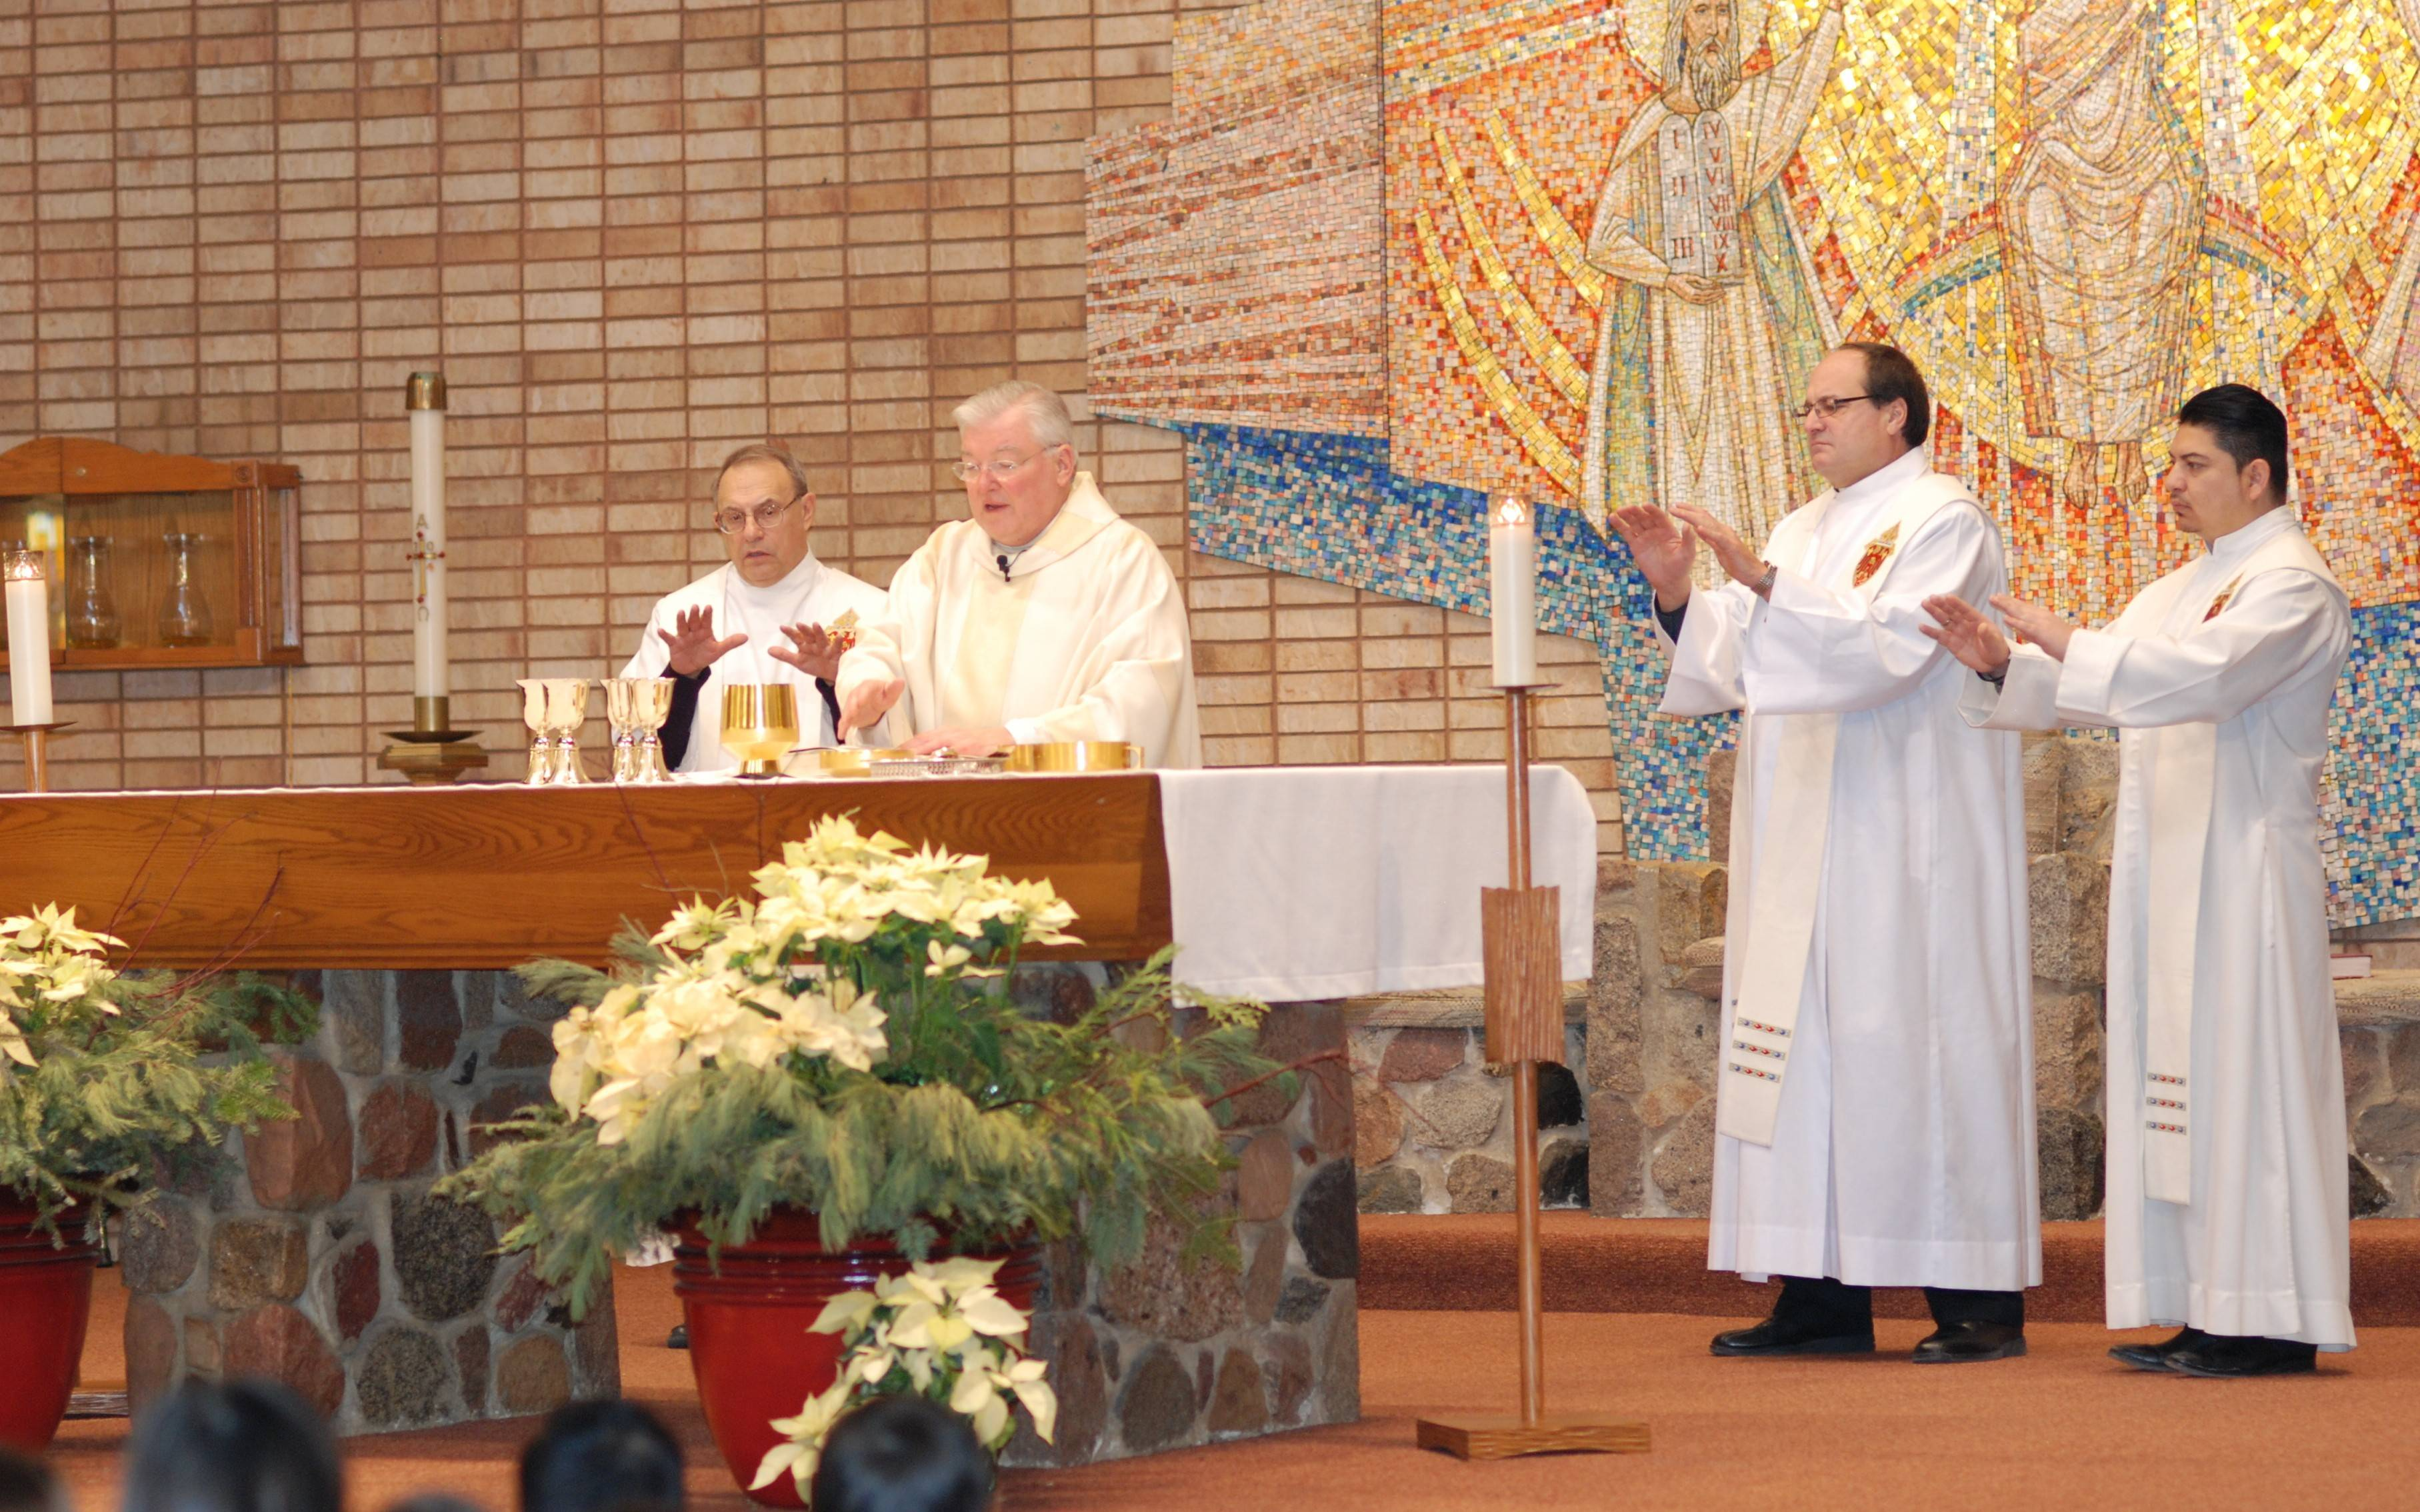 The Rev. Ron Gollatz, shown here at the altar leading a 2015 Mass at Transfiguration Catholic Church in Wauconda, has died.